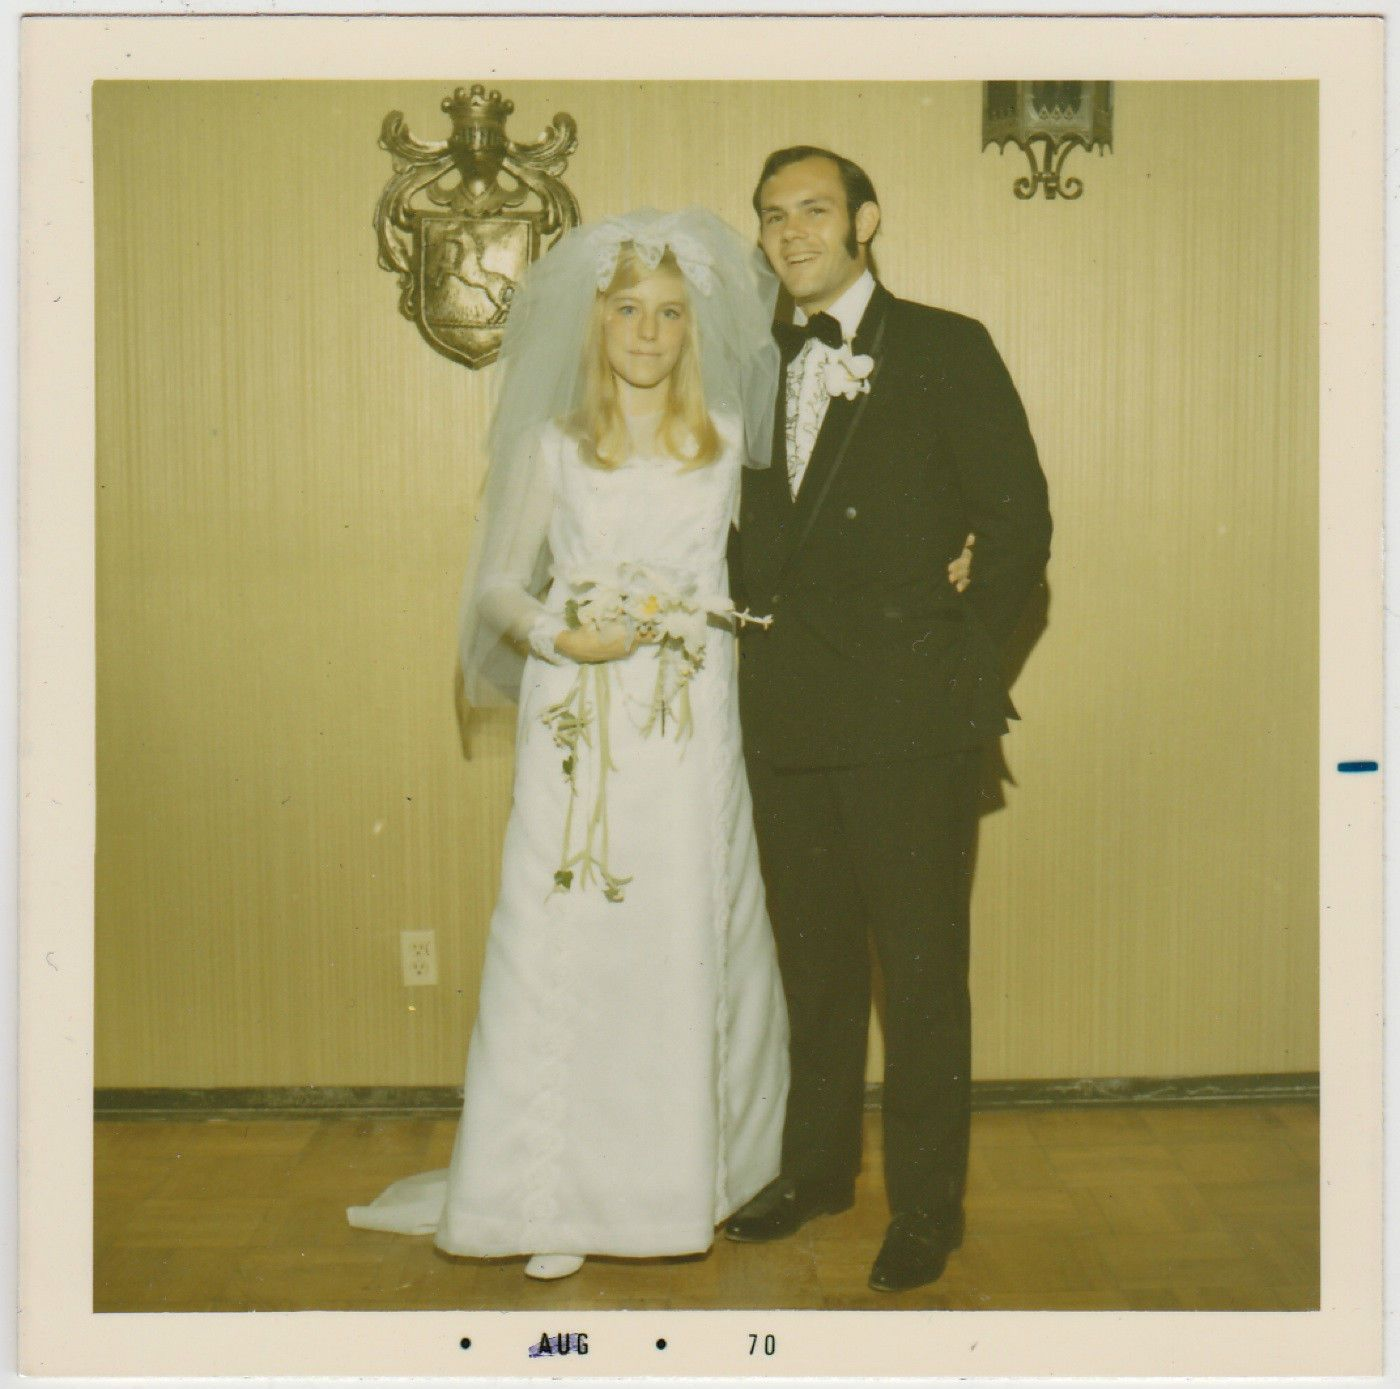 Square Vintage 70s Photo Young Wedding Couple Blond Bride